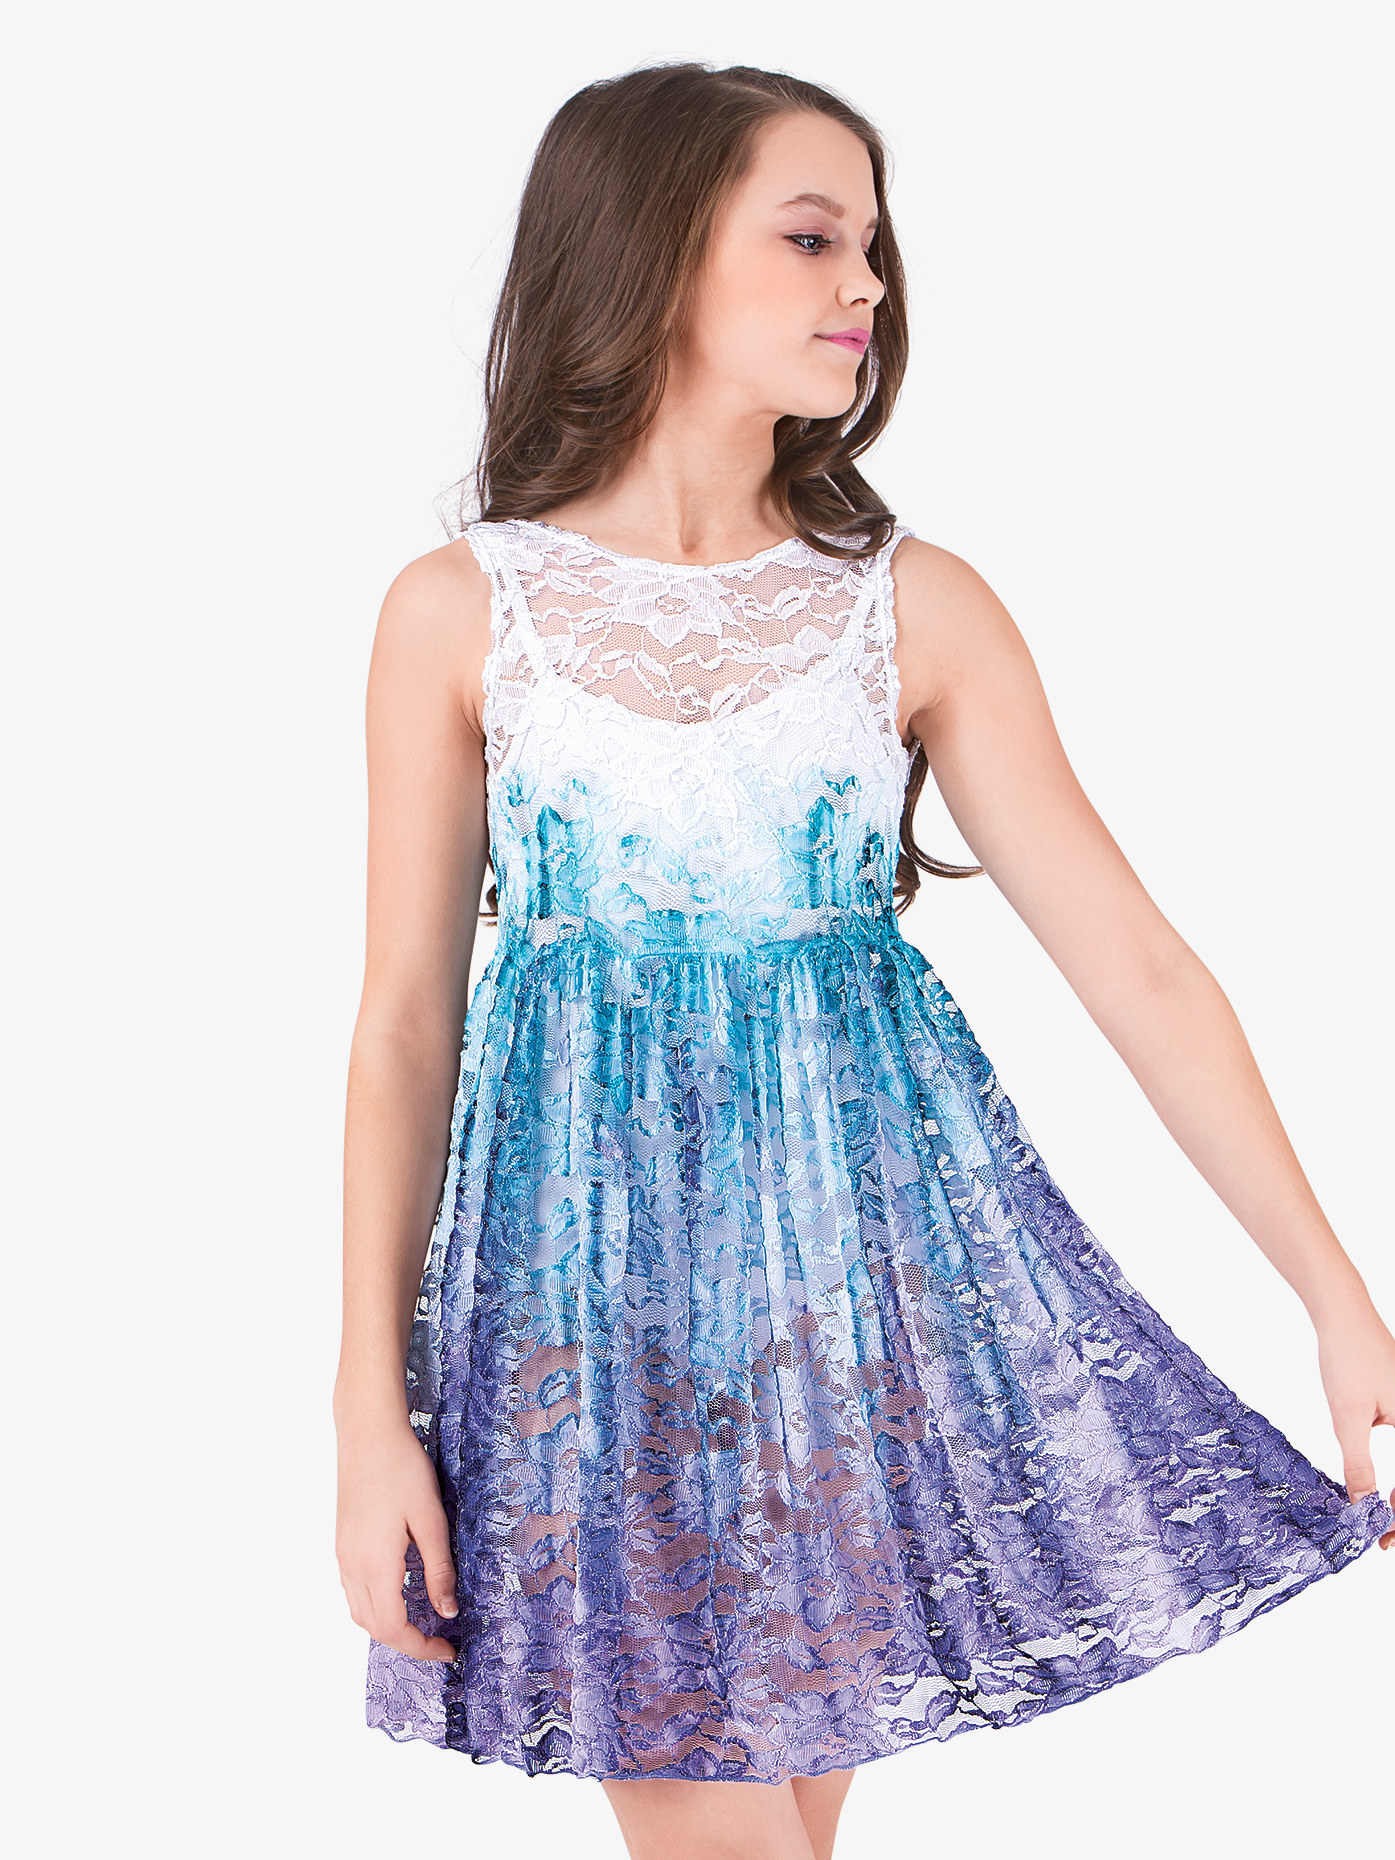 Watercolour Girls Lace Tank Overdress WC203C